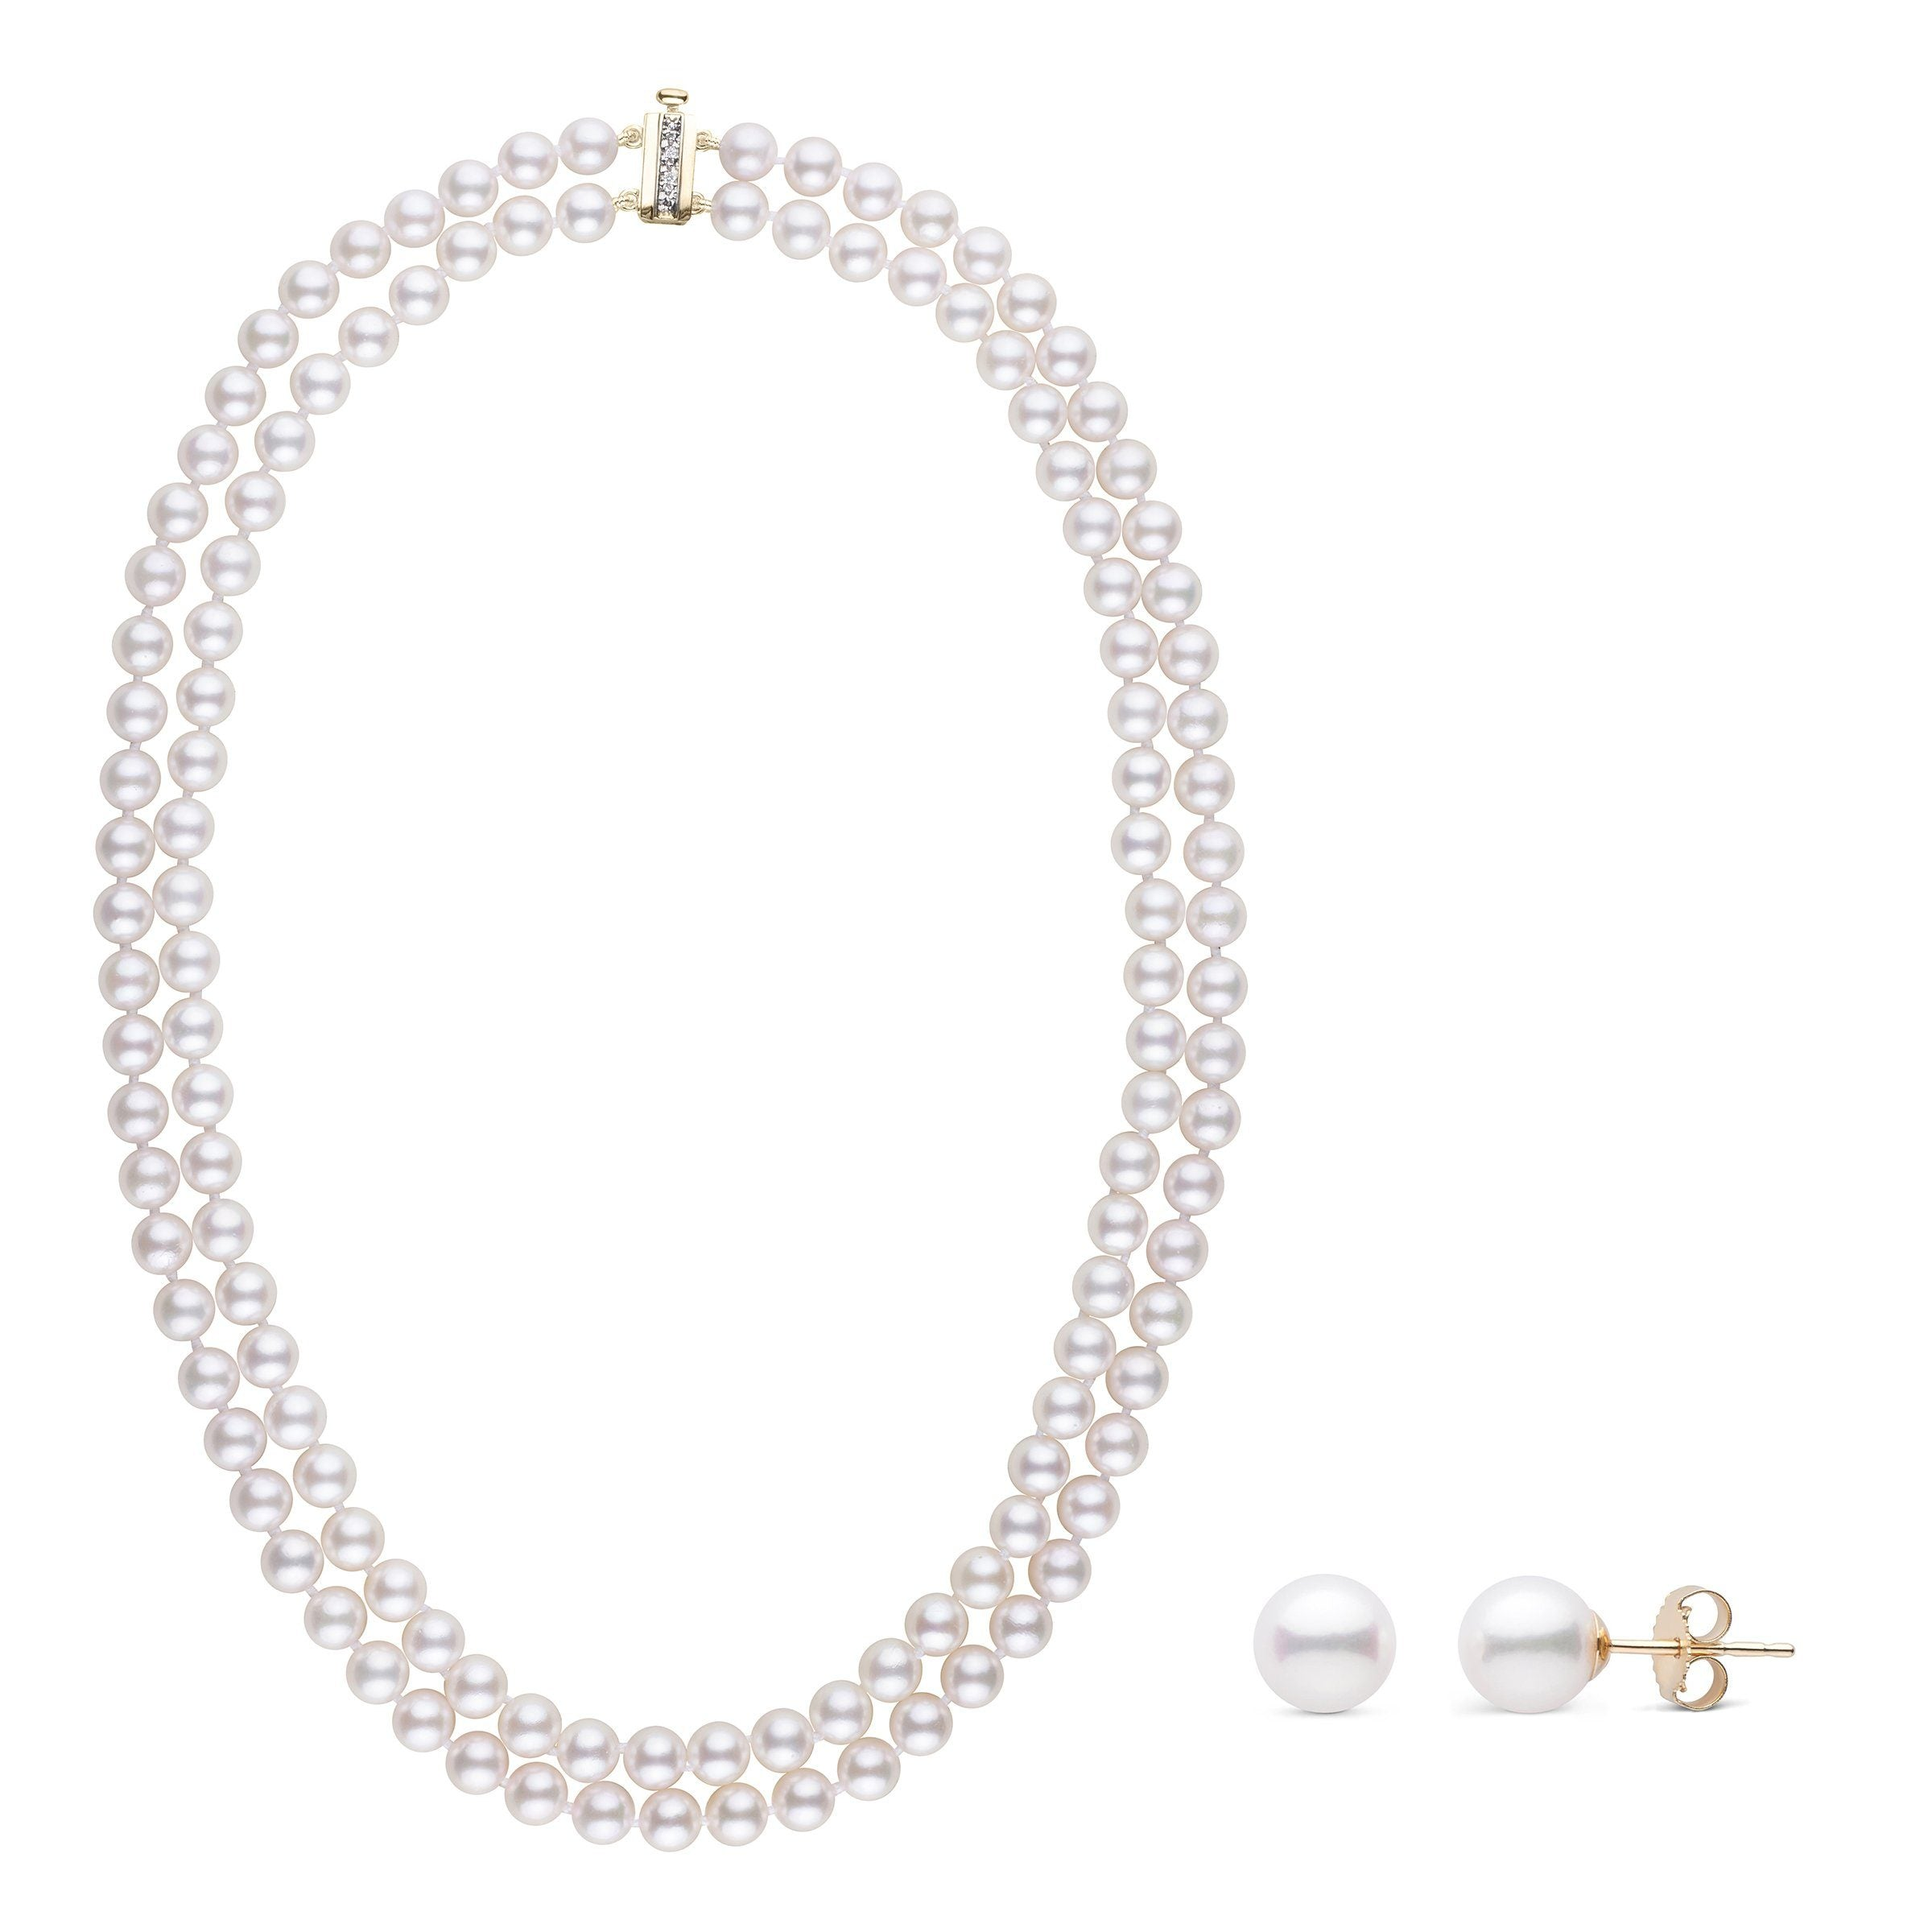 6.0-6.5 mm AA+ White Akoya Double Strand Diamond Bar Clasp Necklace & Earring Set